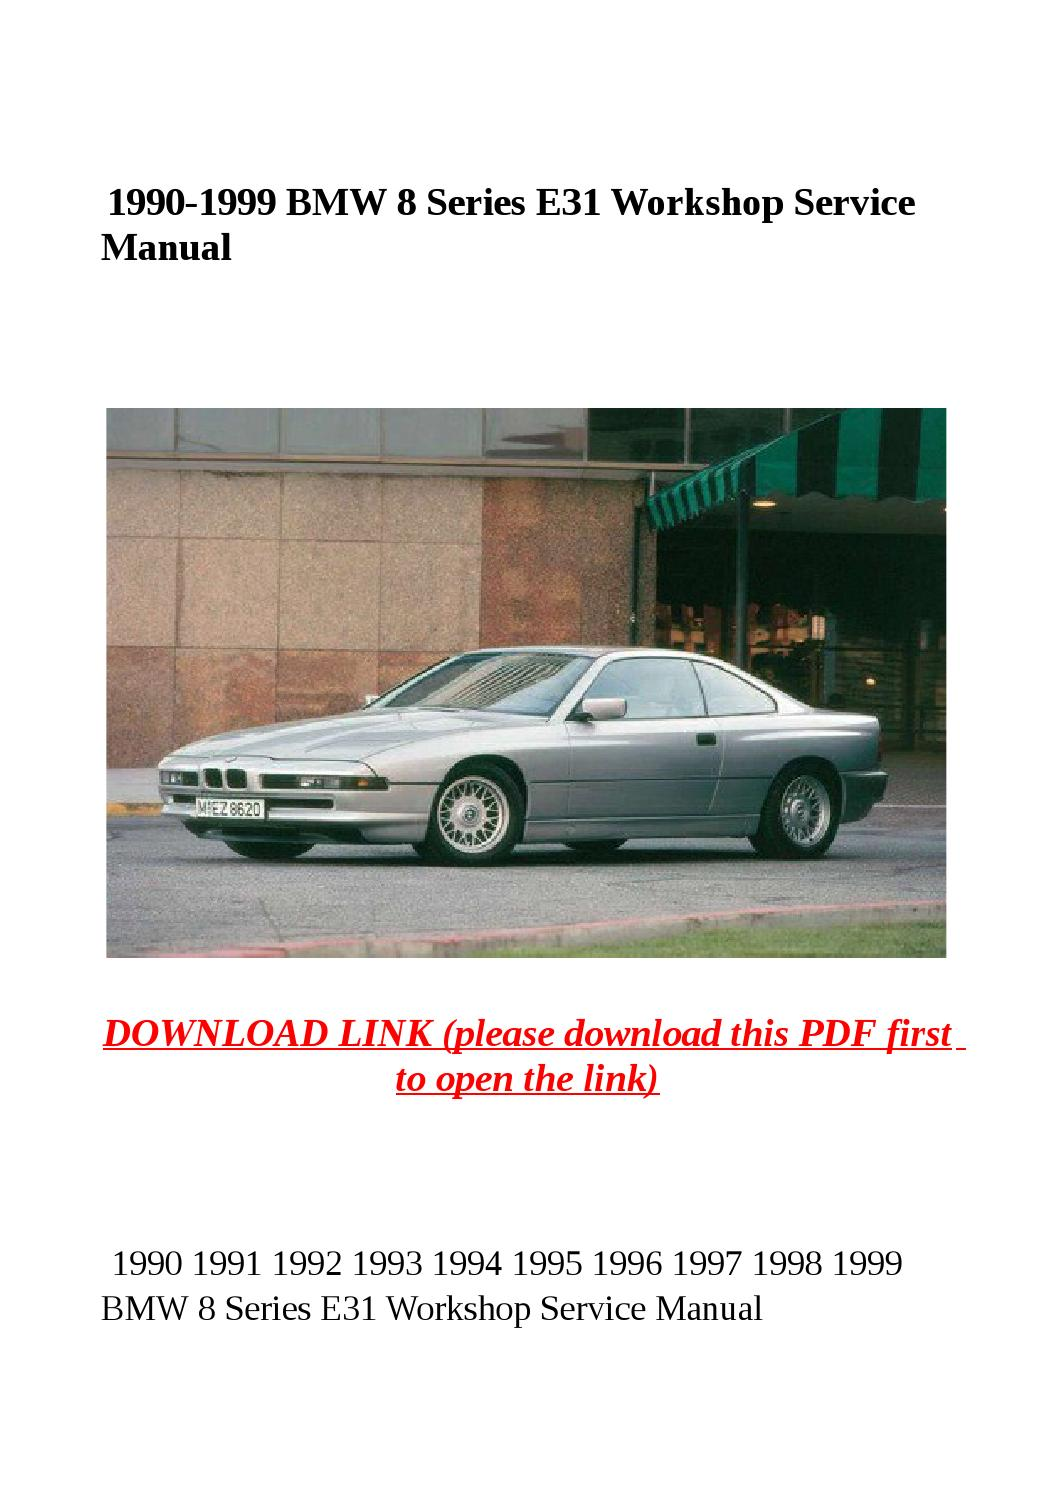 service manual bmw 8 series e31 1993 factory service. Black Bedroom Furniture Sets. Home Design Ideas